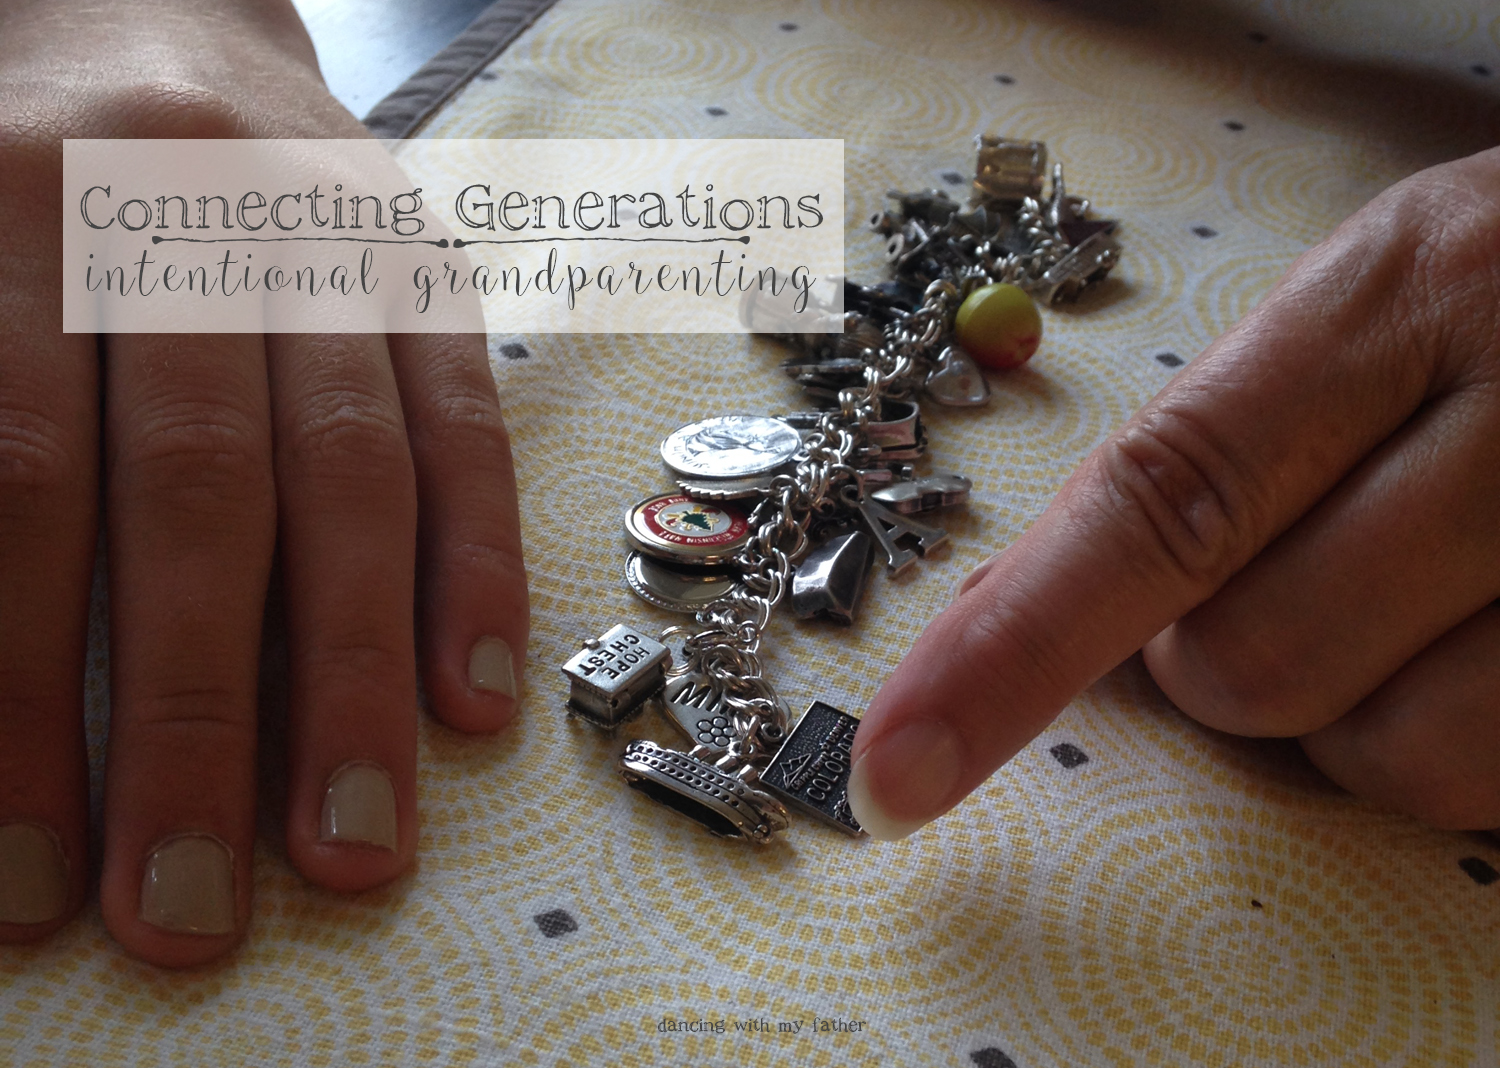 connecting-generations-spiritual-legacy